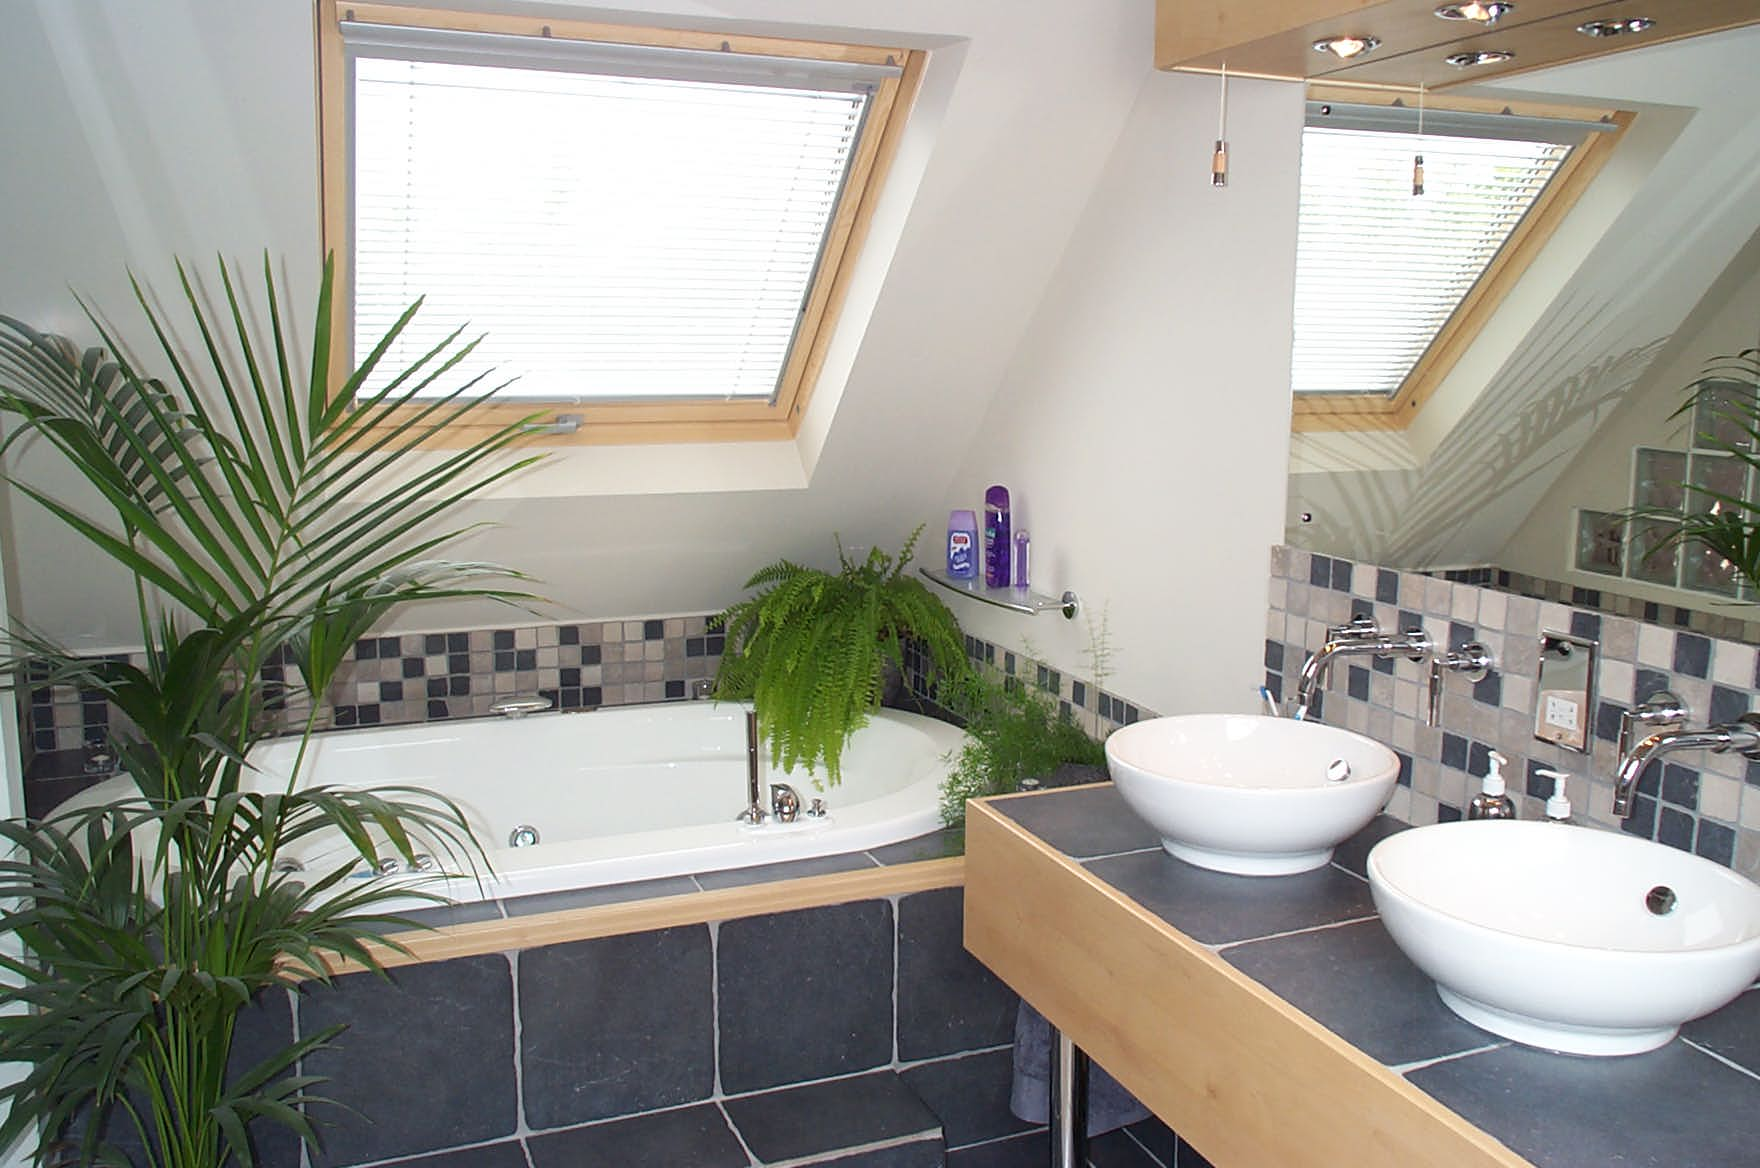 A bathroom as part of a fantastic loft conversion in the home